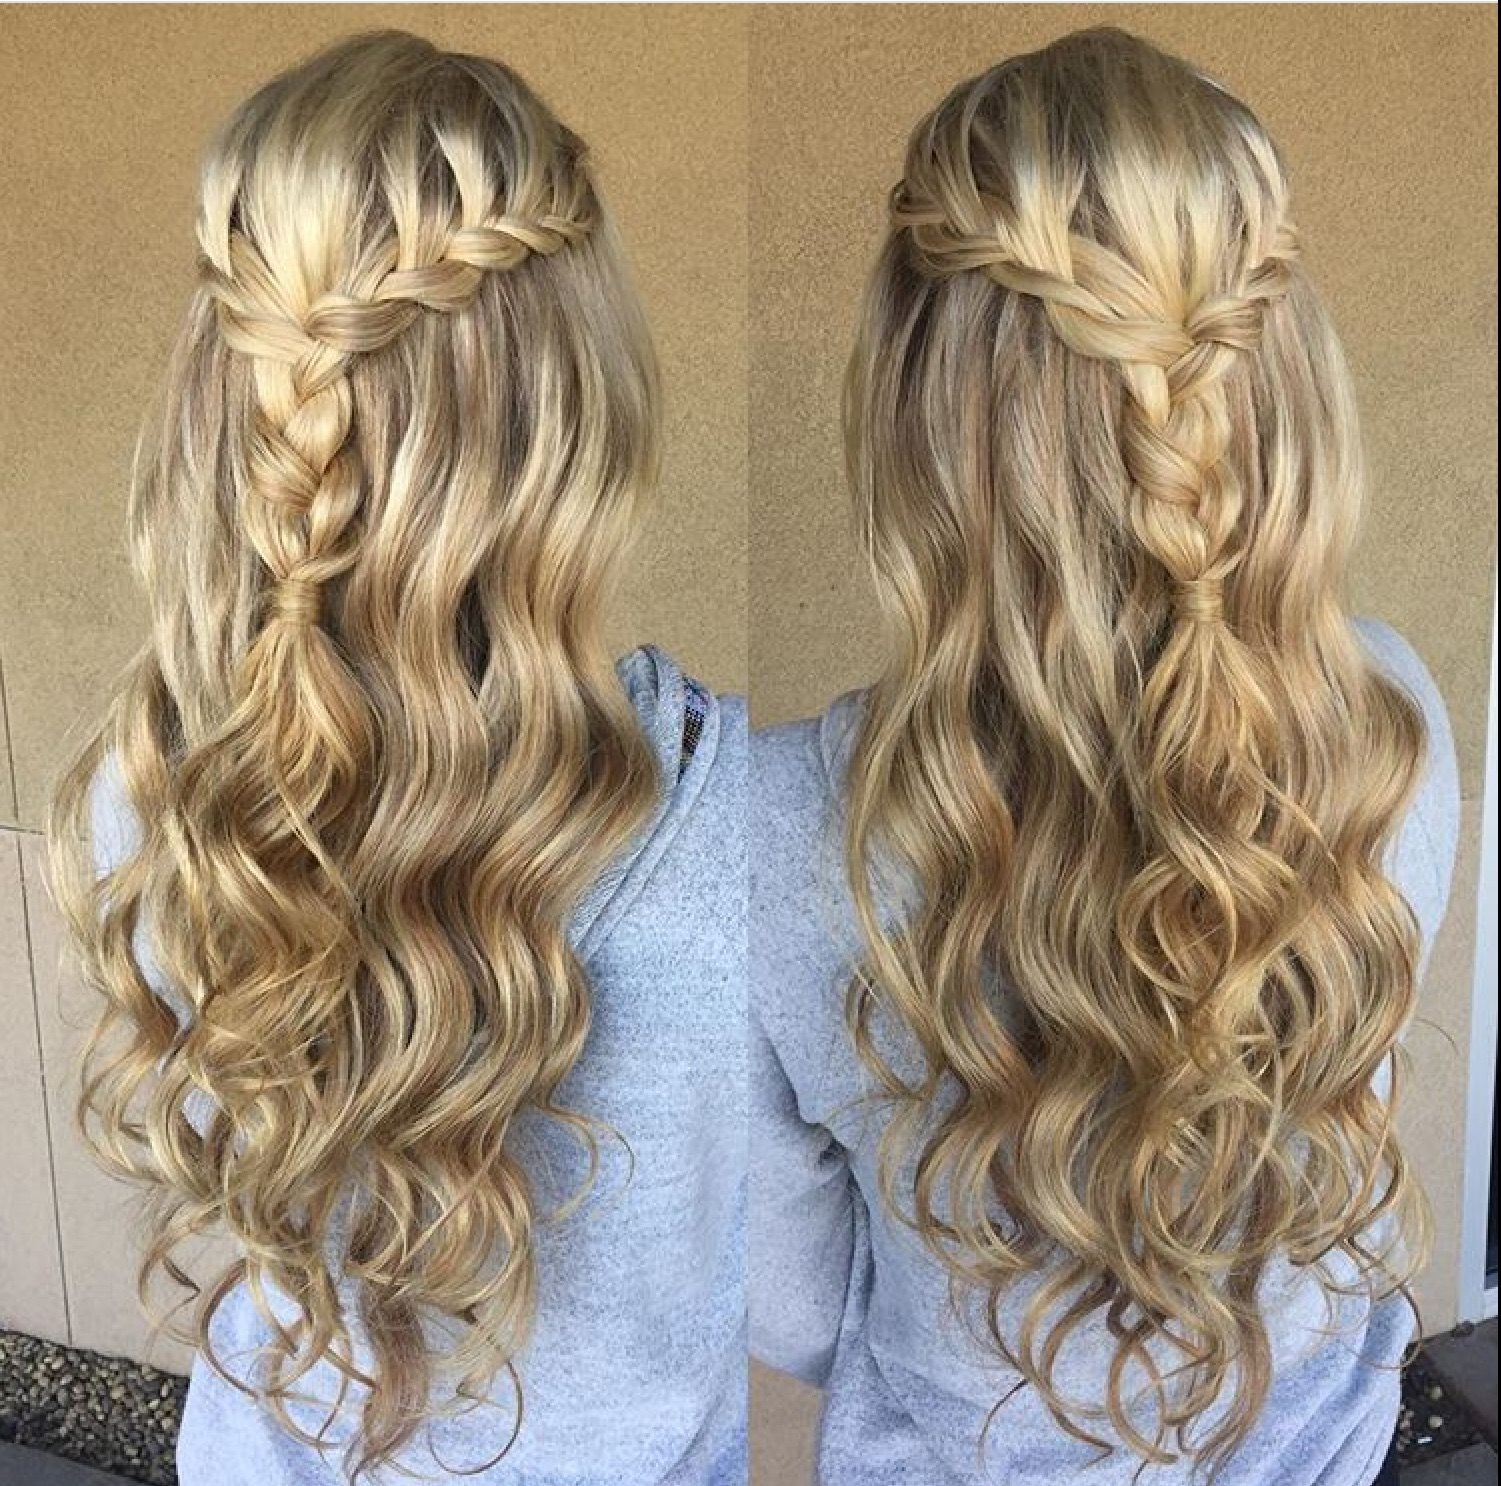 Wedding up Half hairstyles with braid